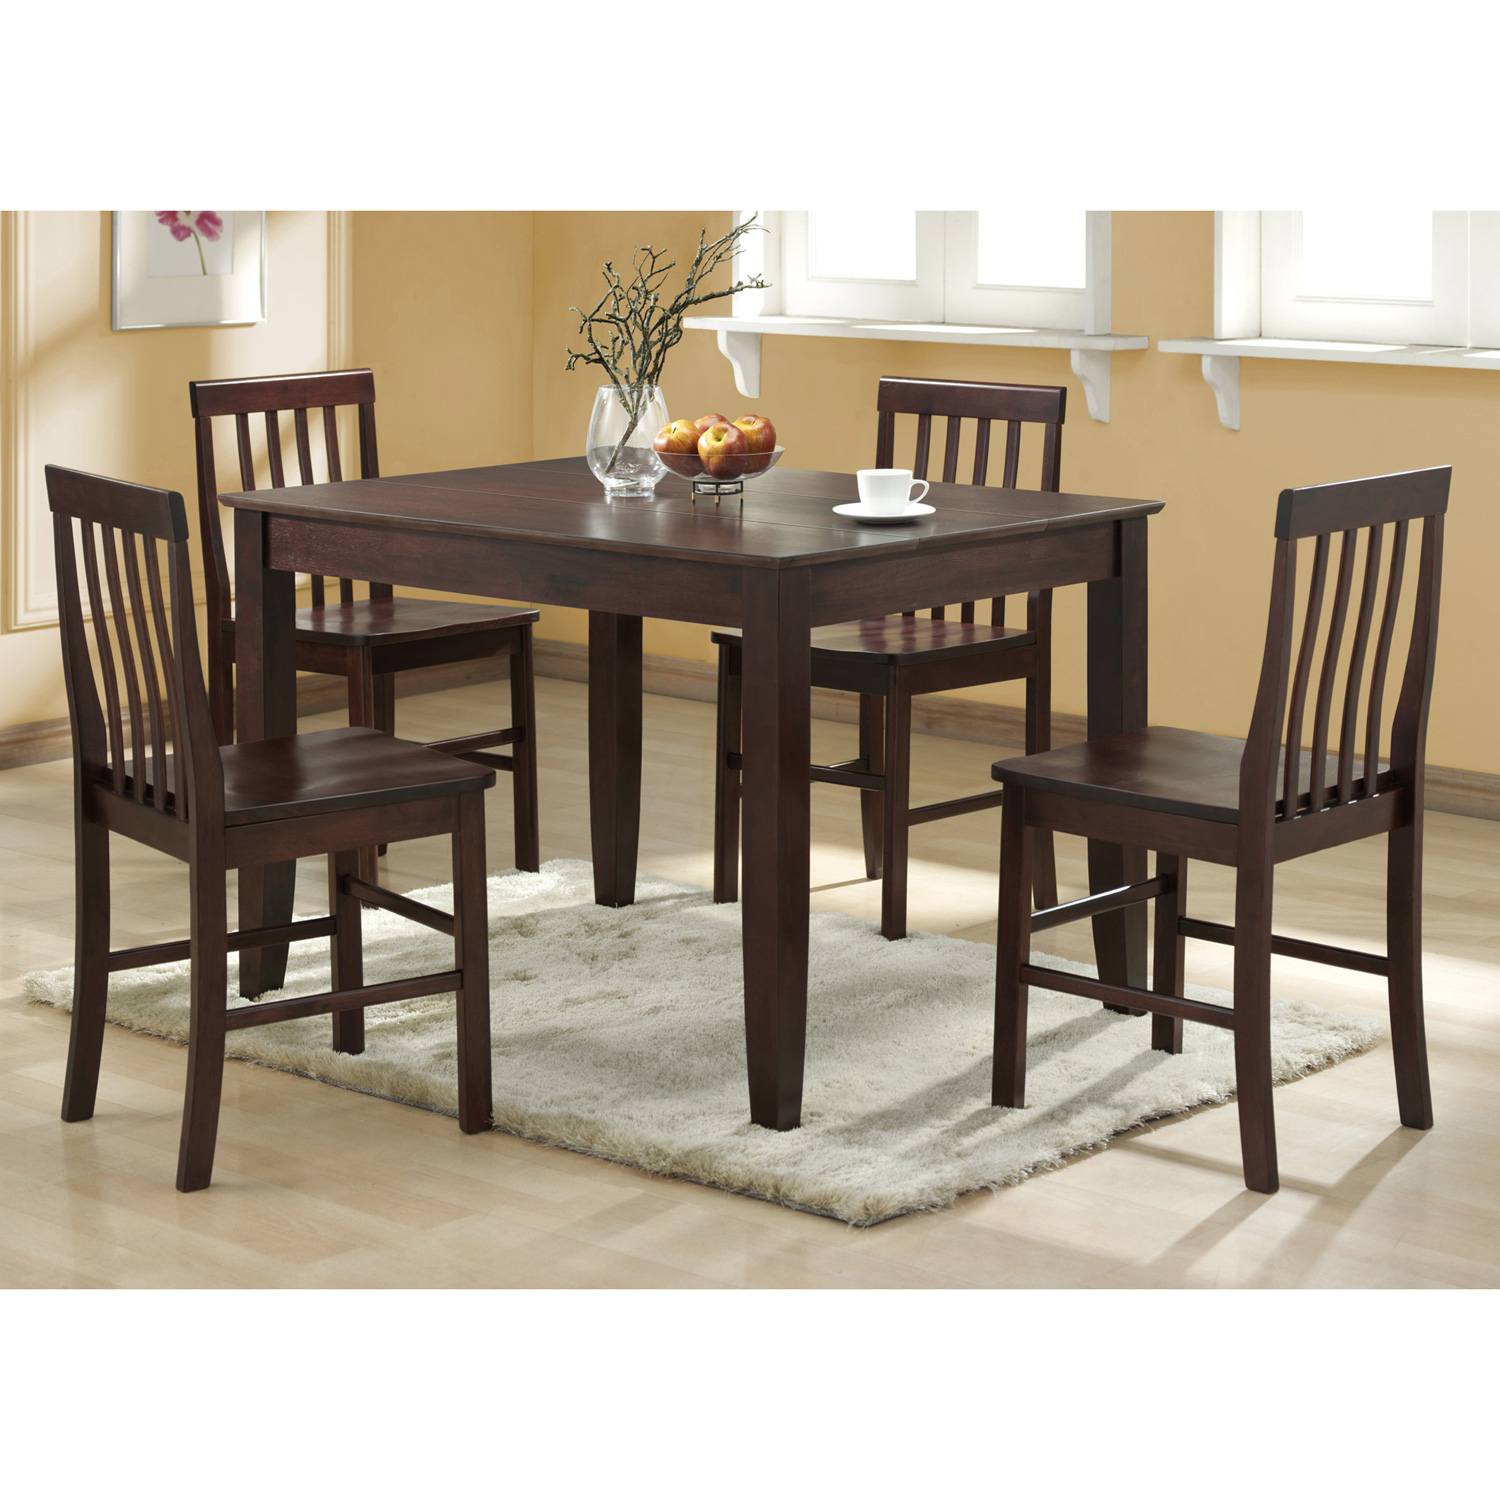 Abigail 5-Piece Wood Dining Set in Espresso